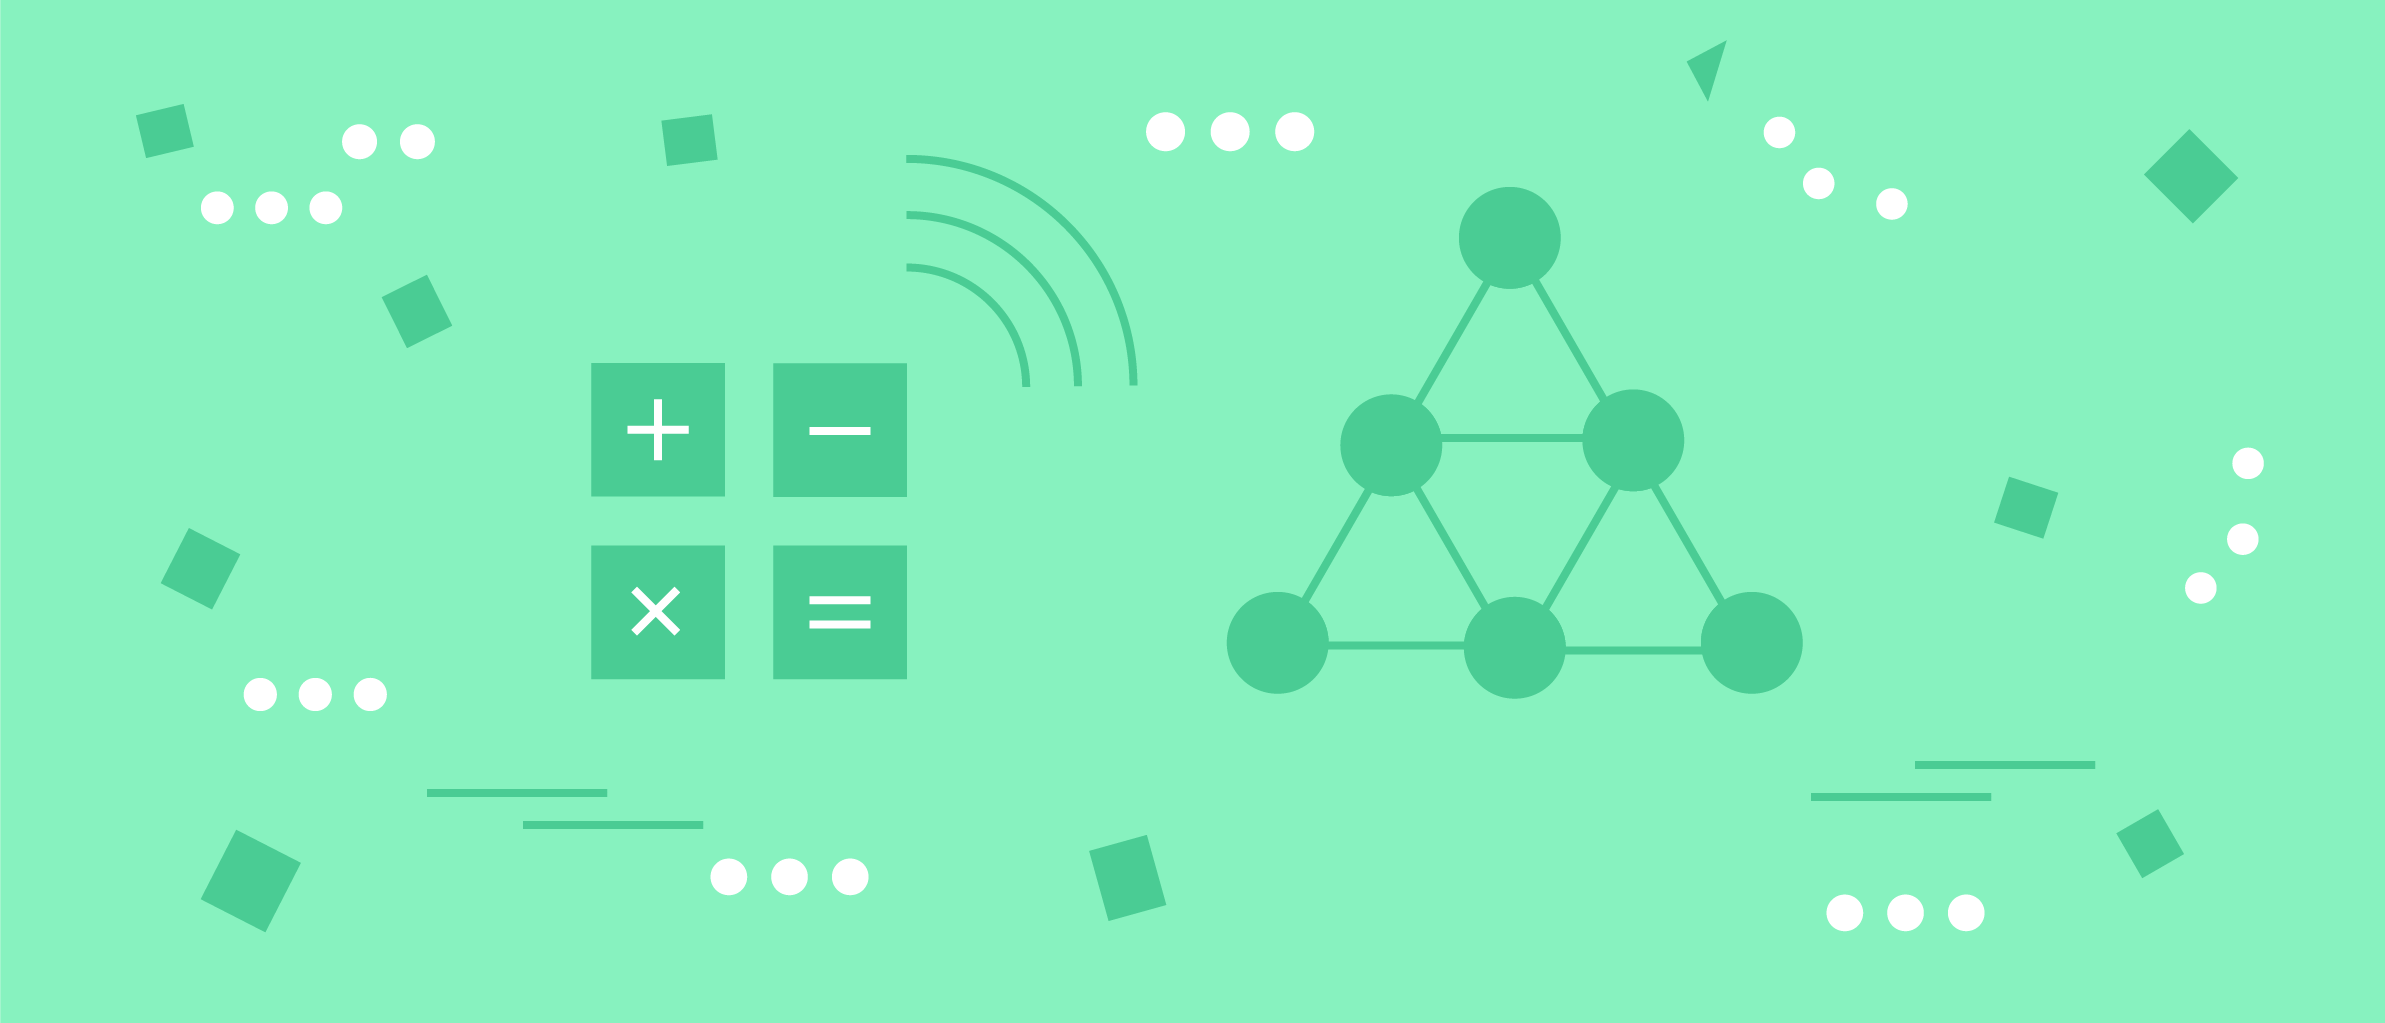 curb-customer-churn-with-preemptive-workflows blog post cover image